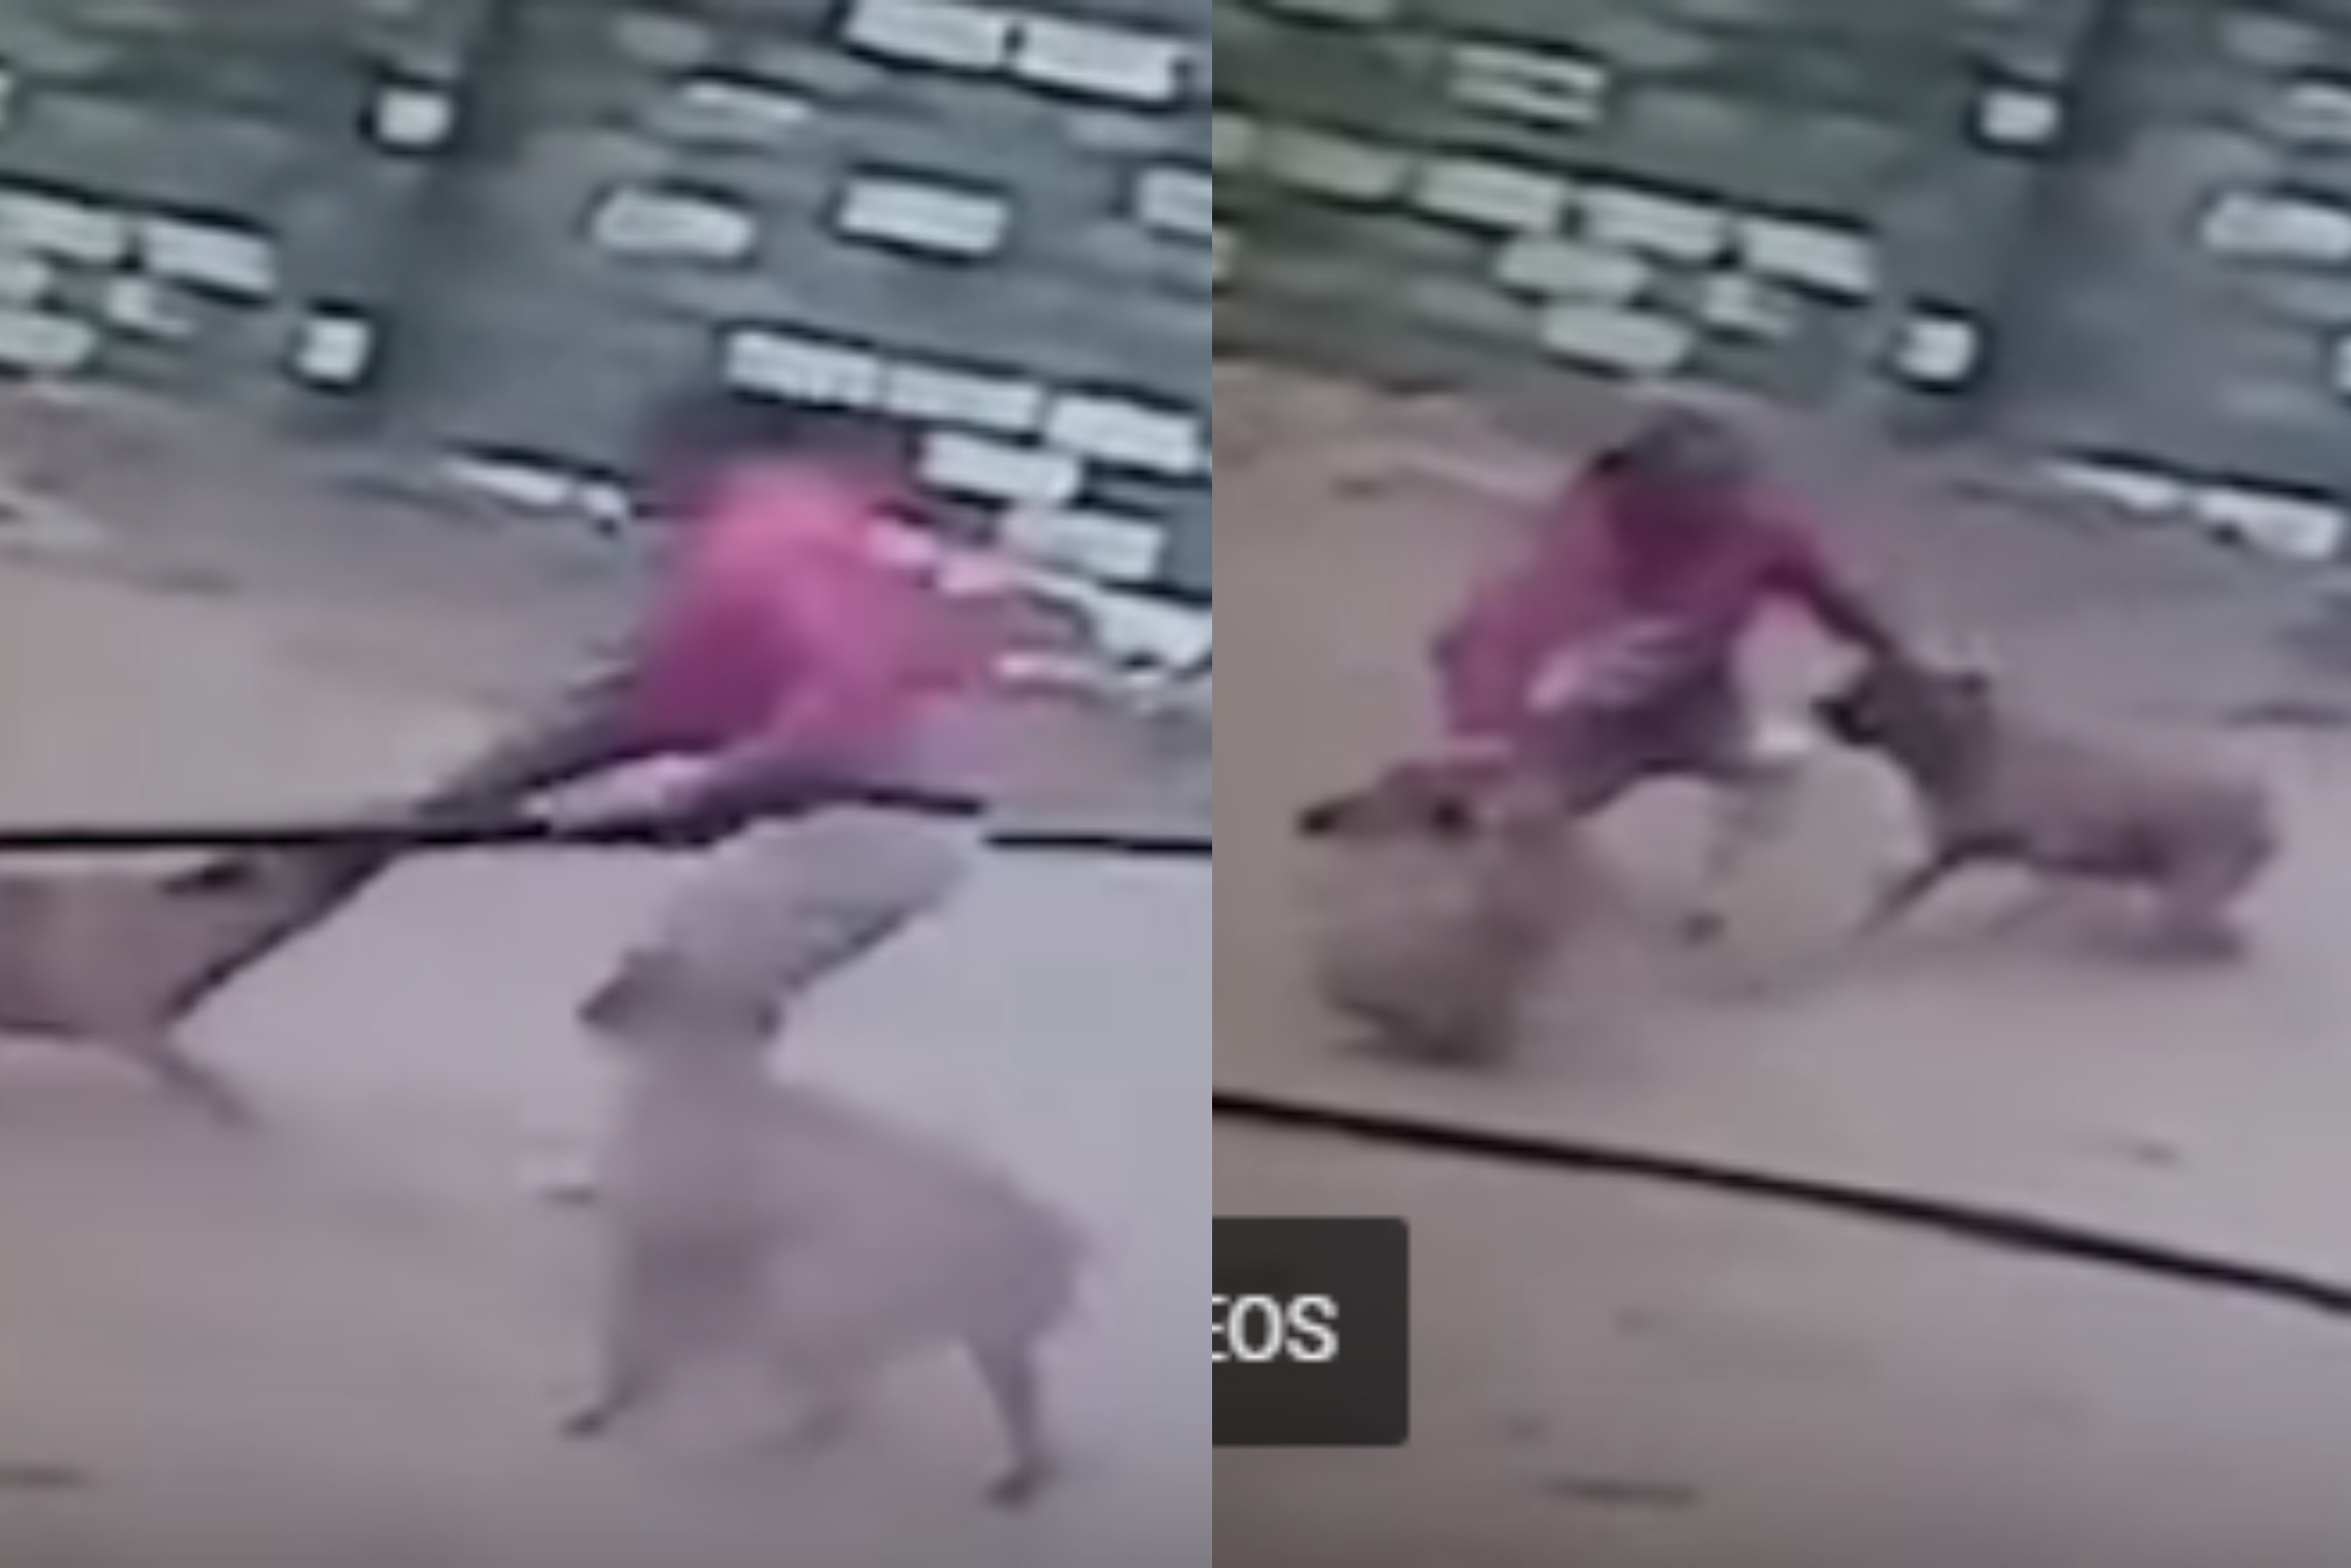 House robber attacked and bitten by 2 vicious dogs after jumping from roof (video)